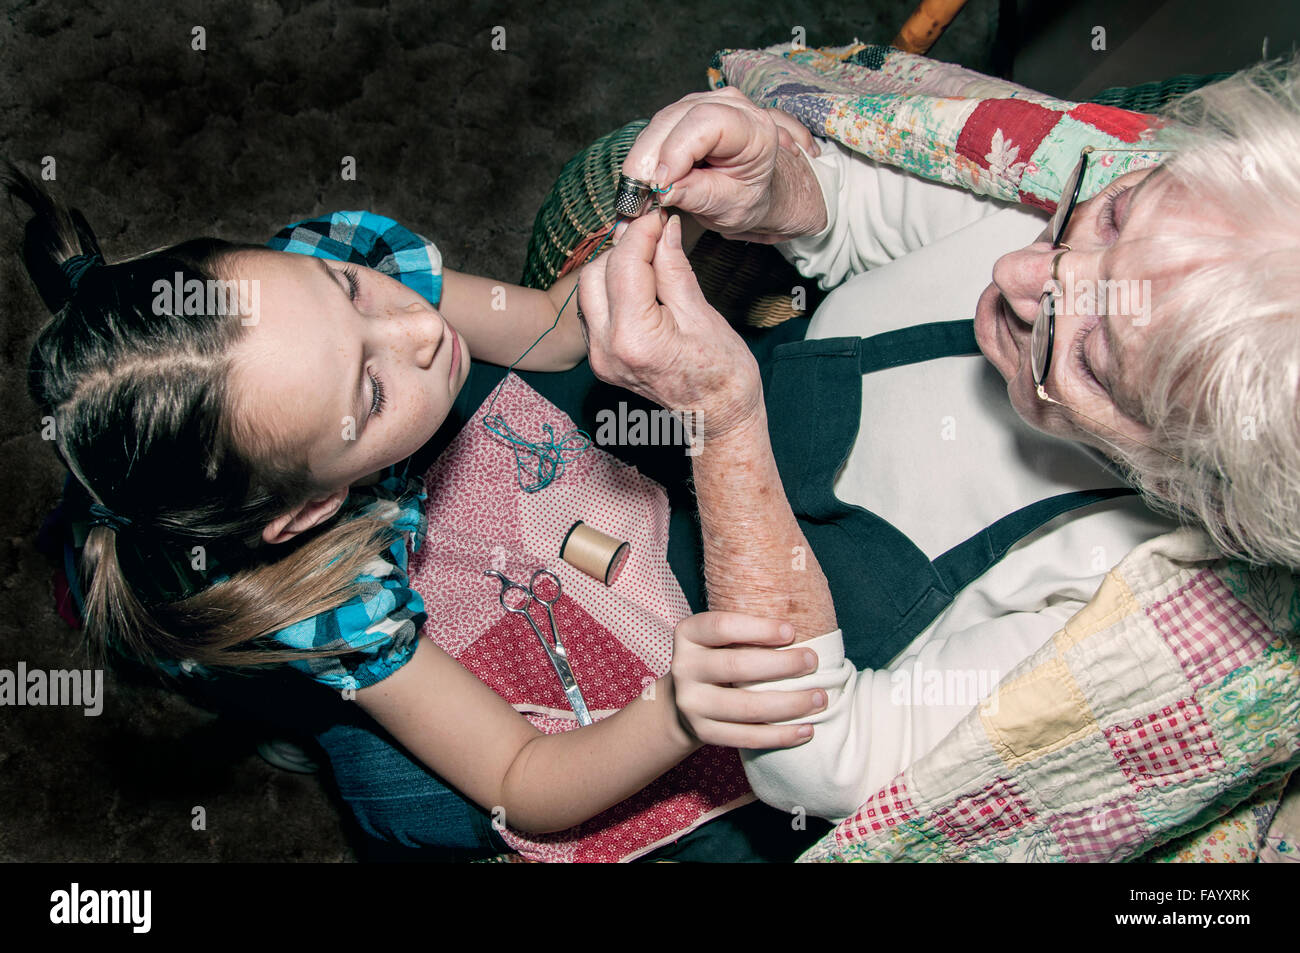 Girl holding grandmothers hands steady to thread needle - Stock Image